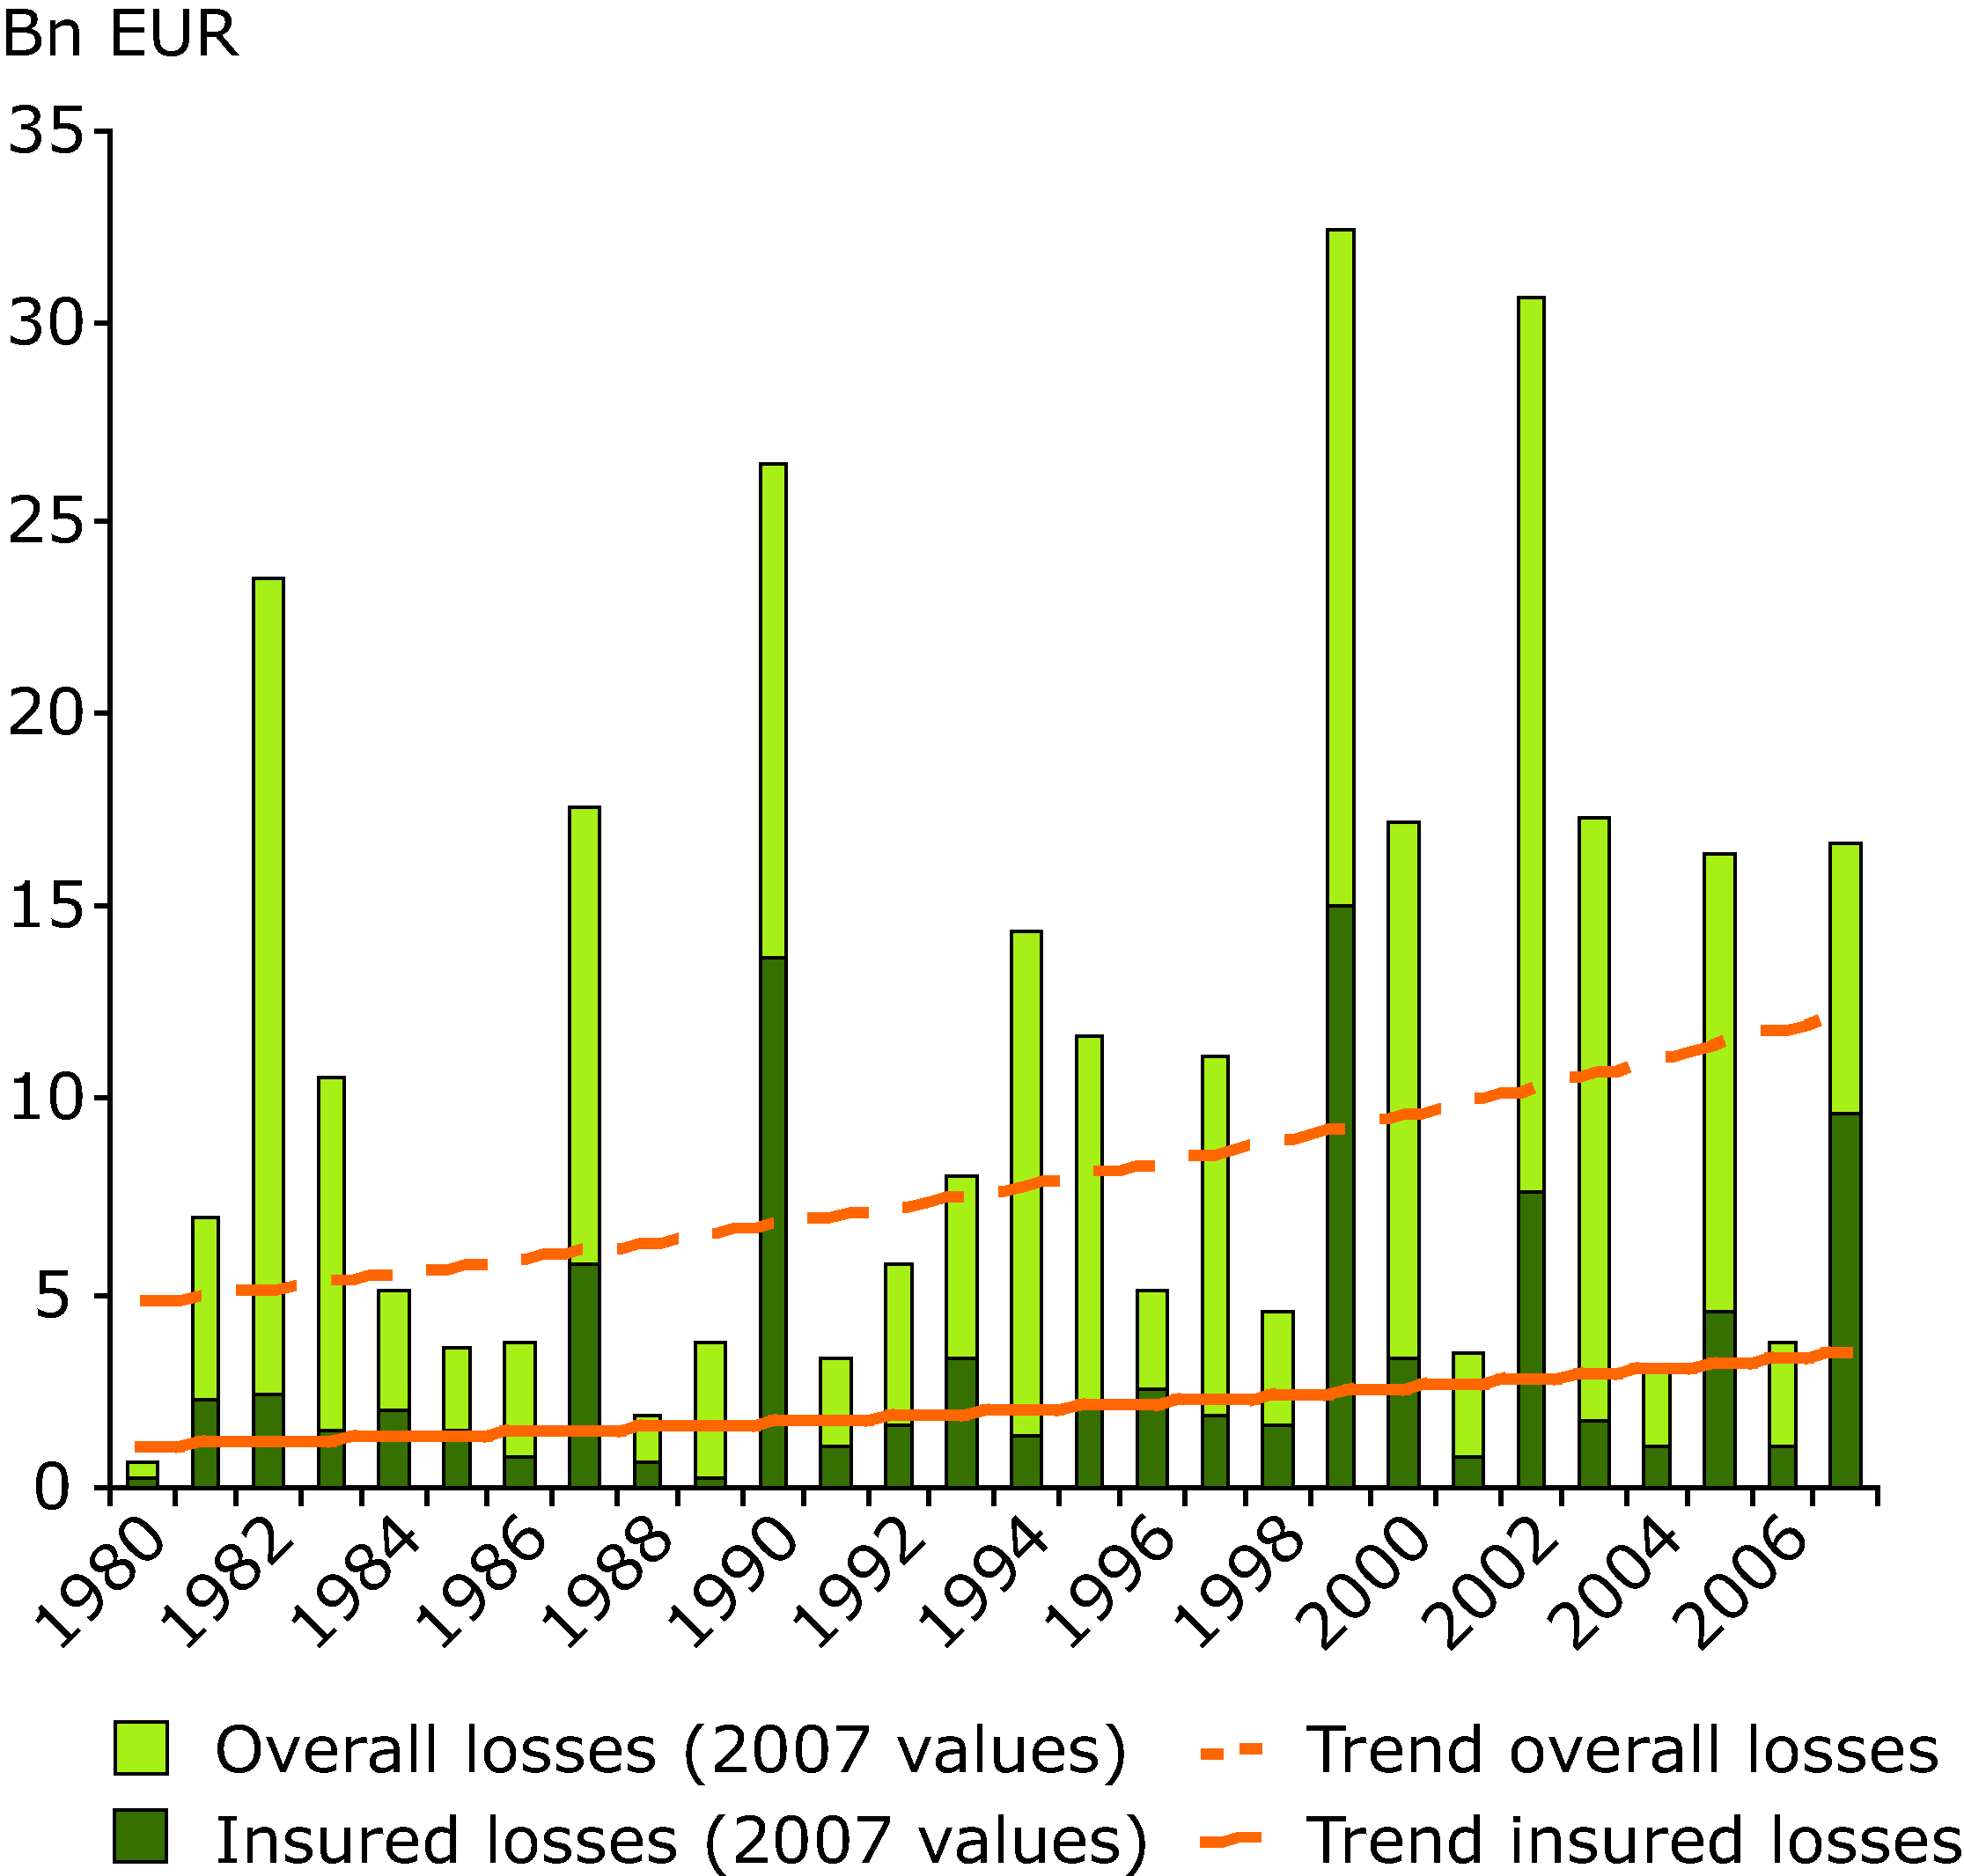 Overall and insured losses from weather disasters in Europe 1980-2007